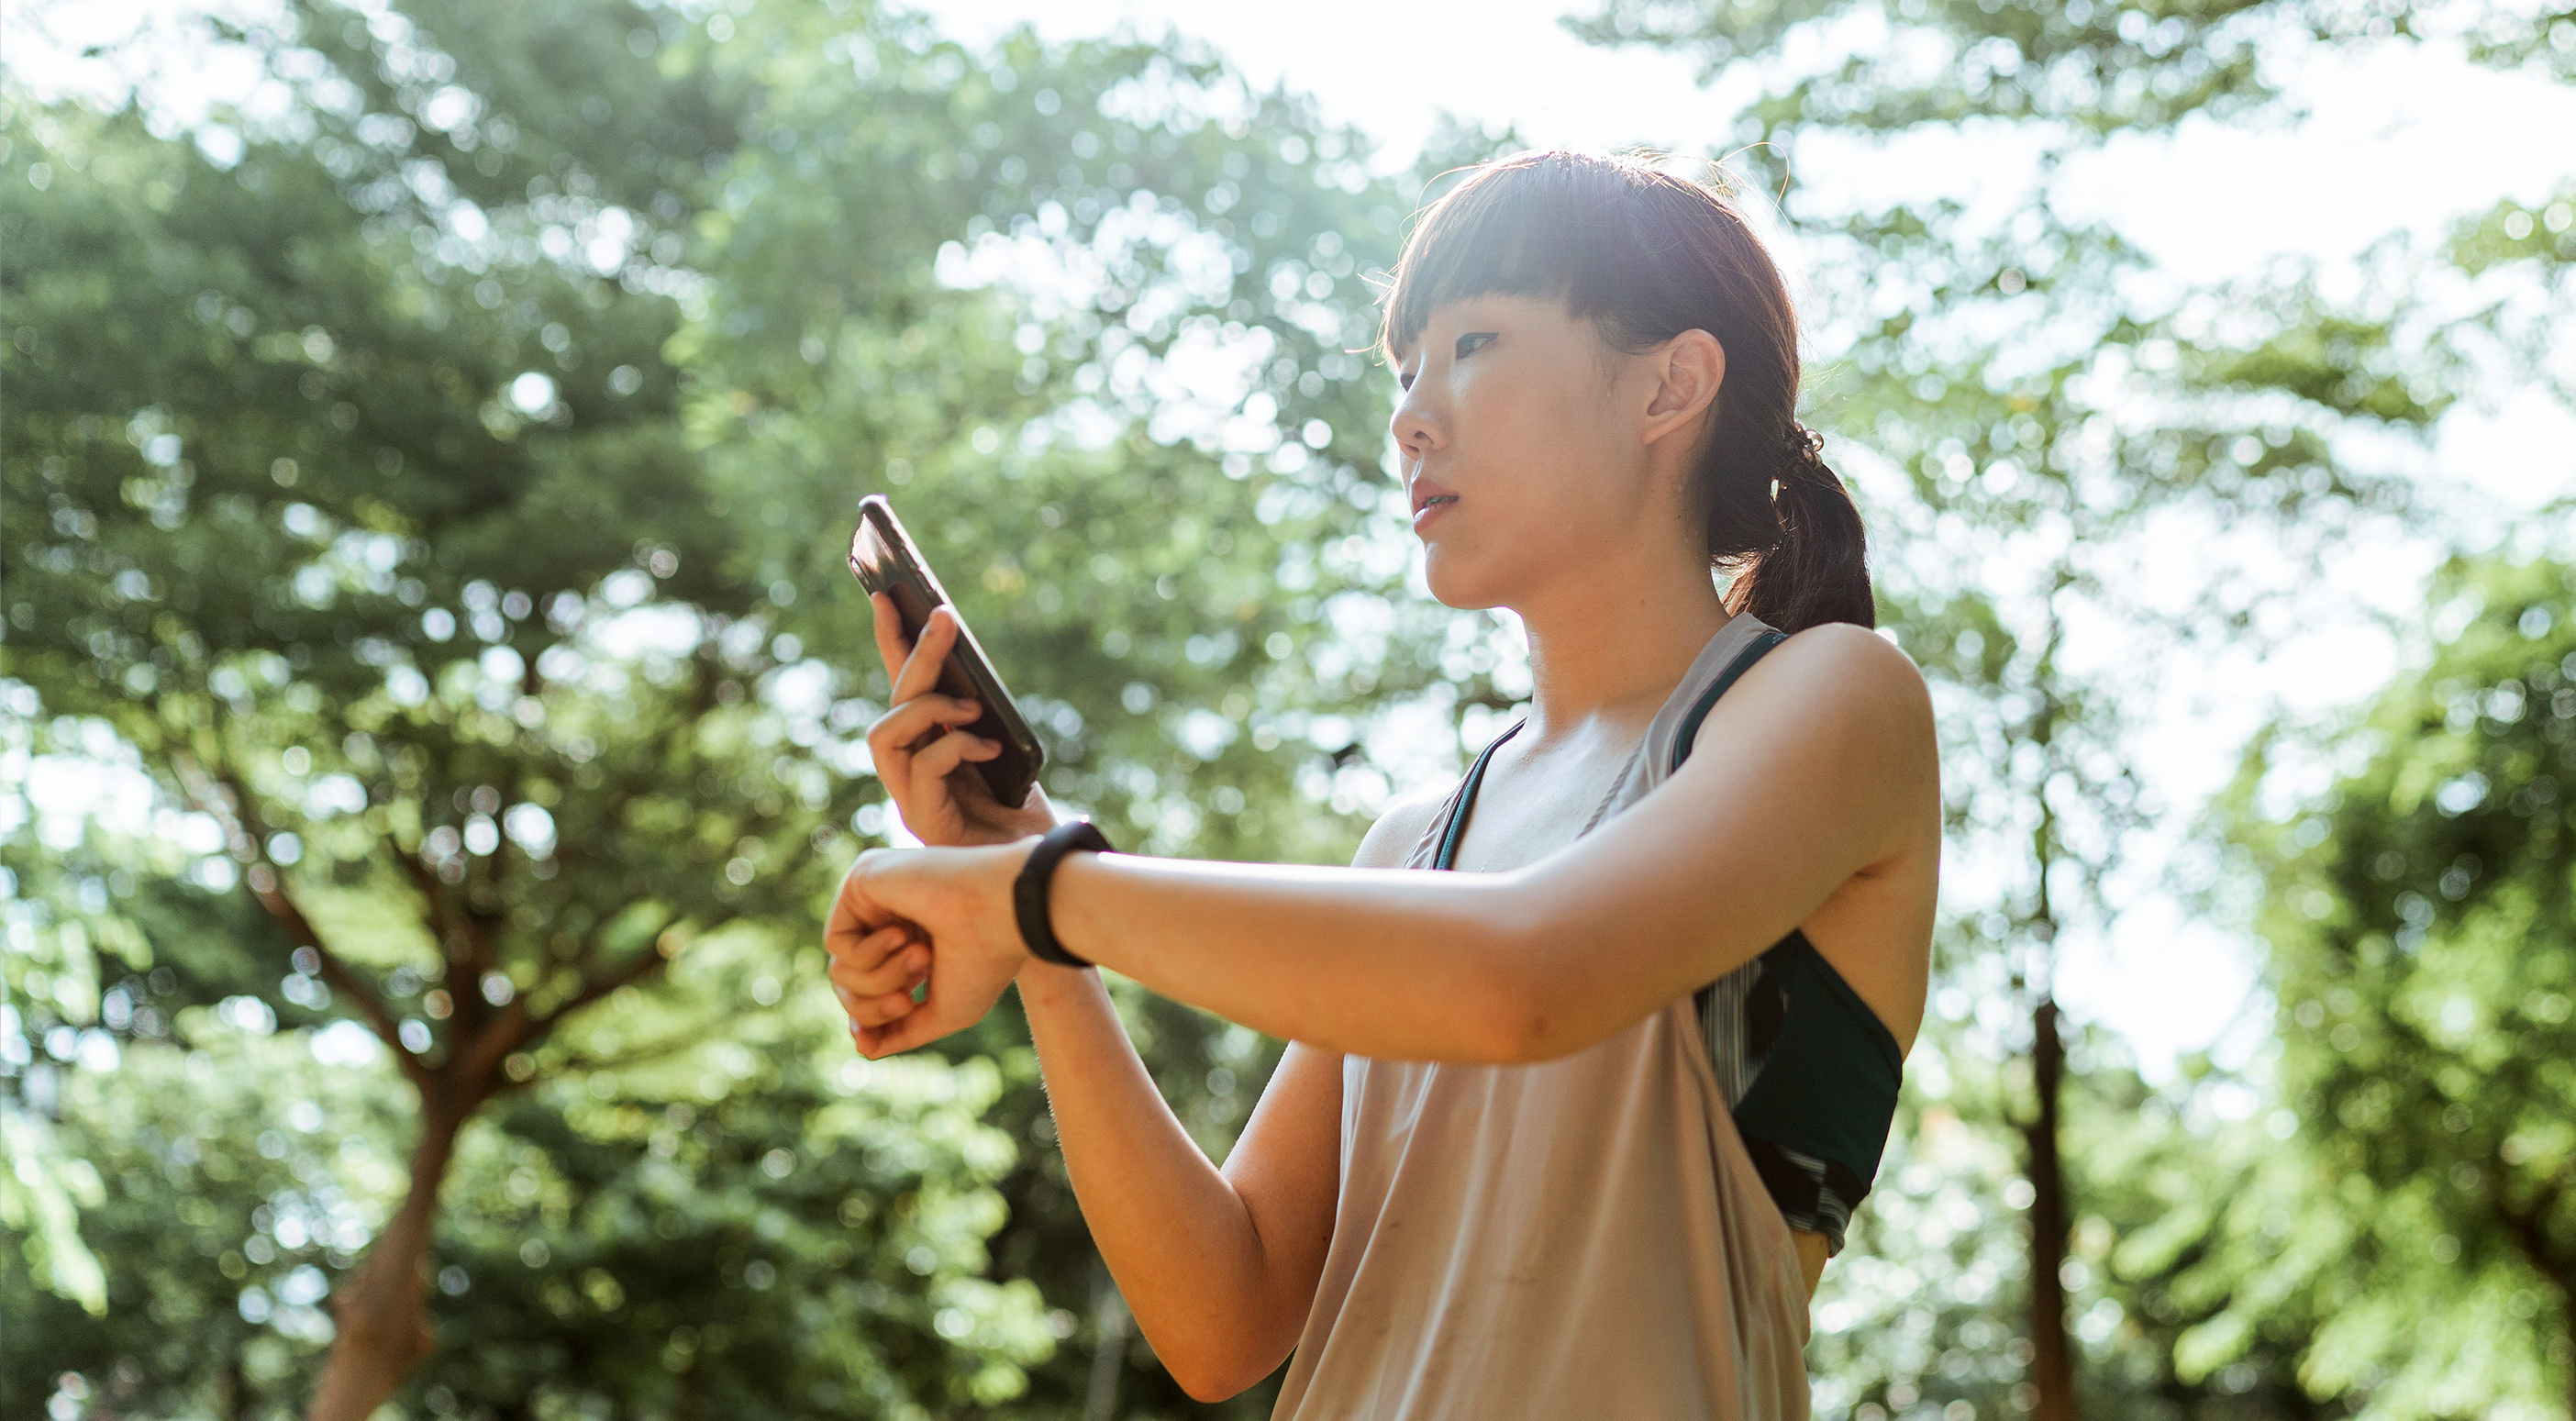 Young woman looking at her phone after a jog in the forest